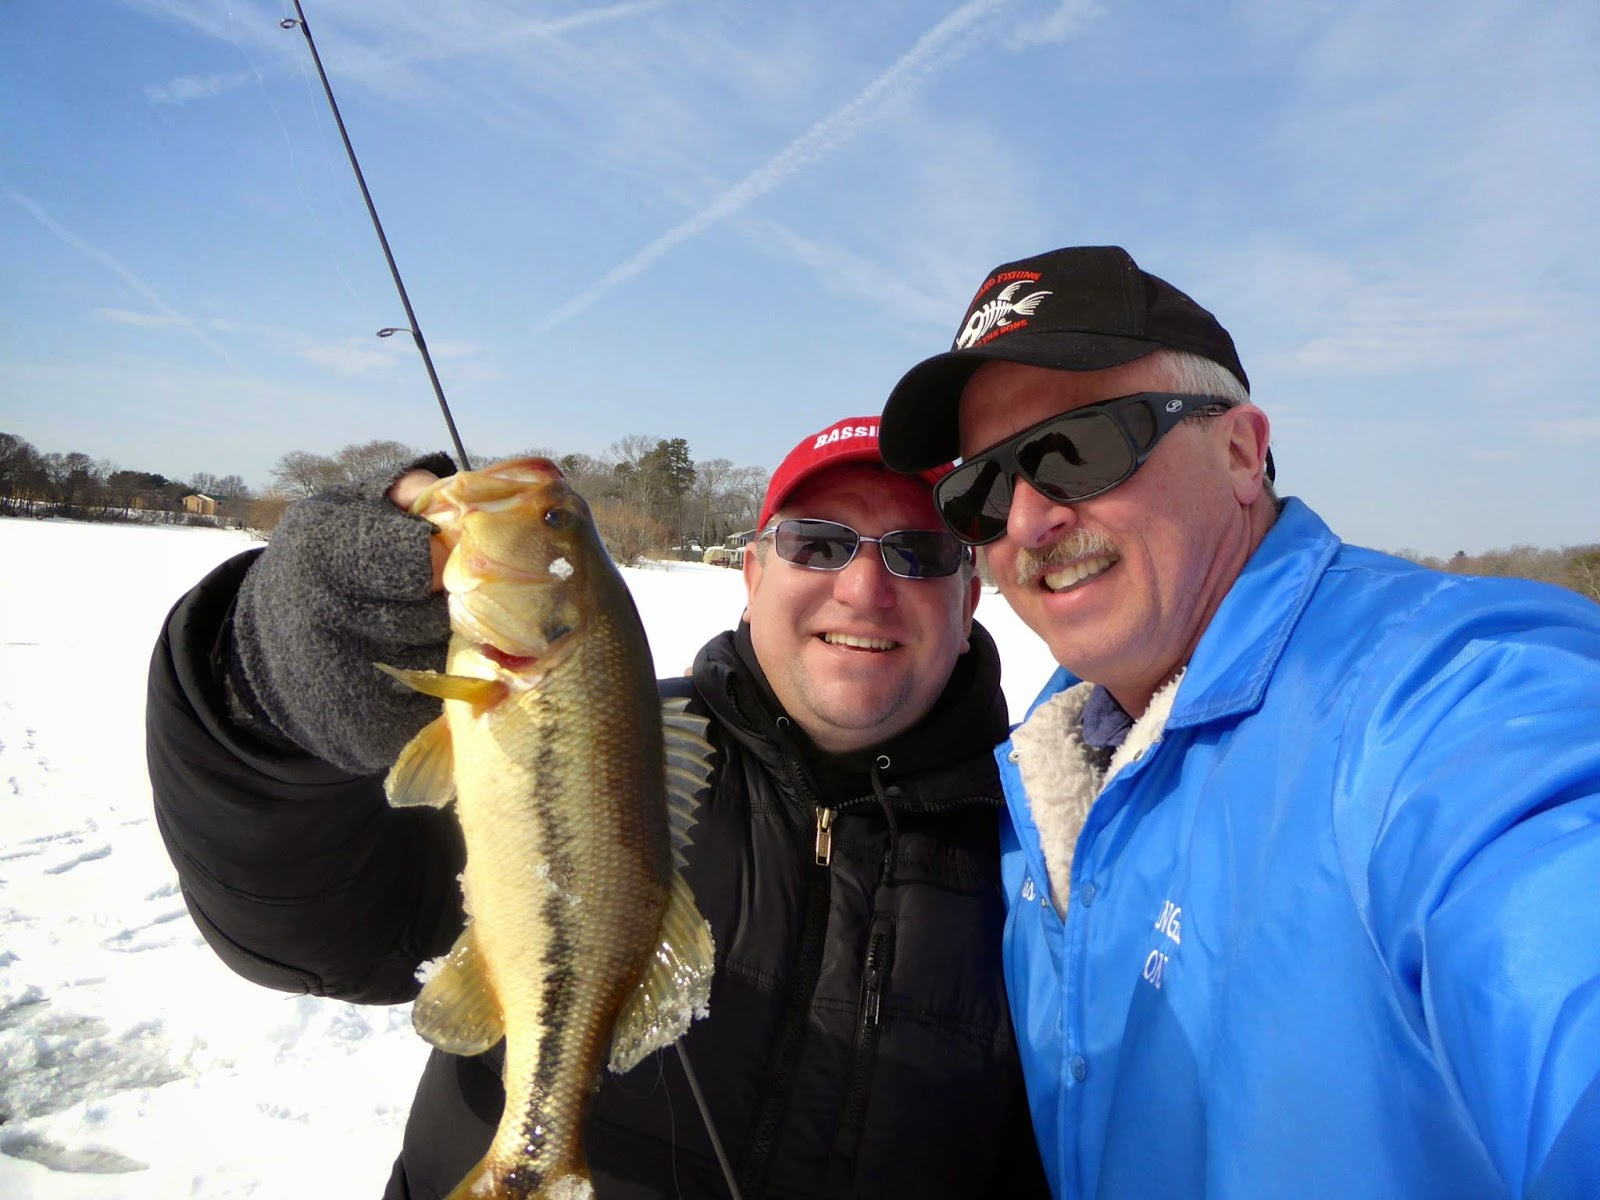 Bassin 39 usa bass fishing blog finally some ice fishing for Ice fishing for bass